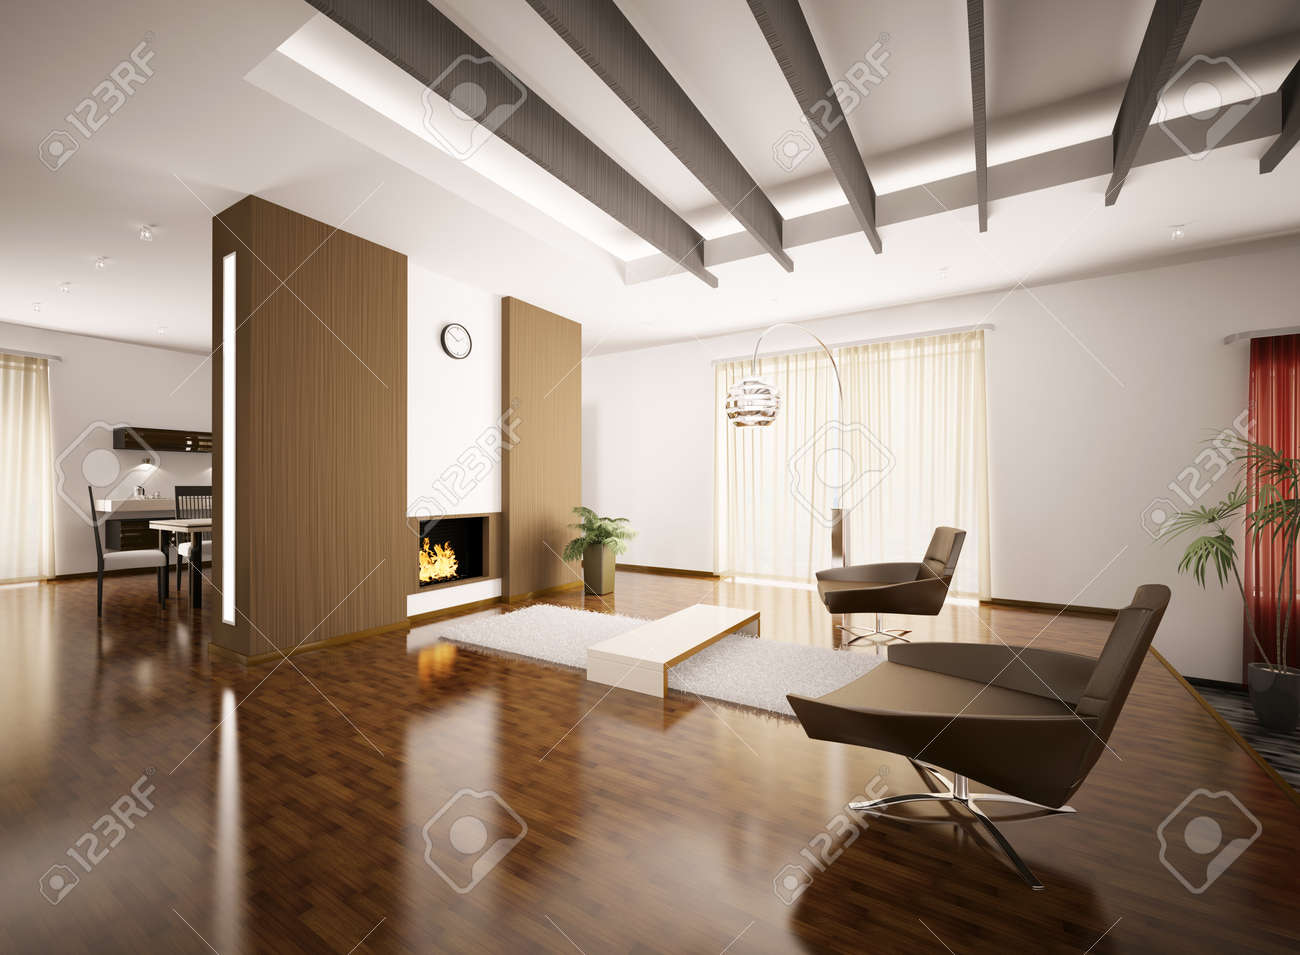 modern apartment interior with fireplace 3d render stock photo